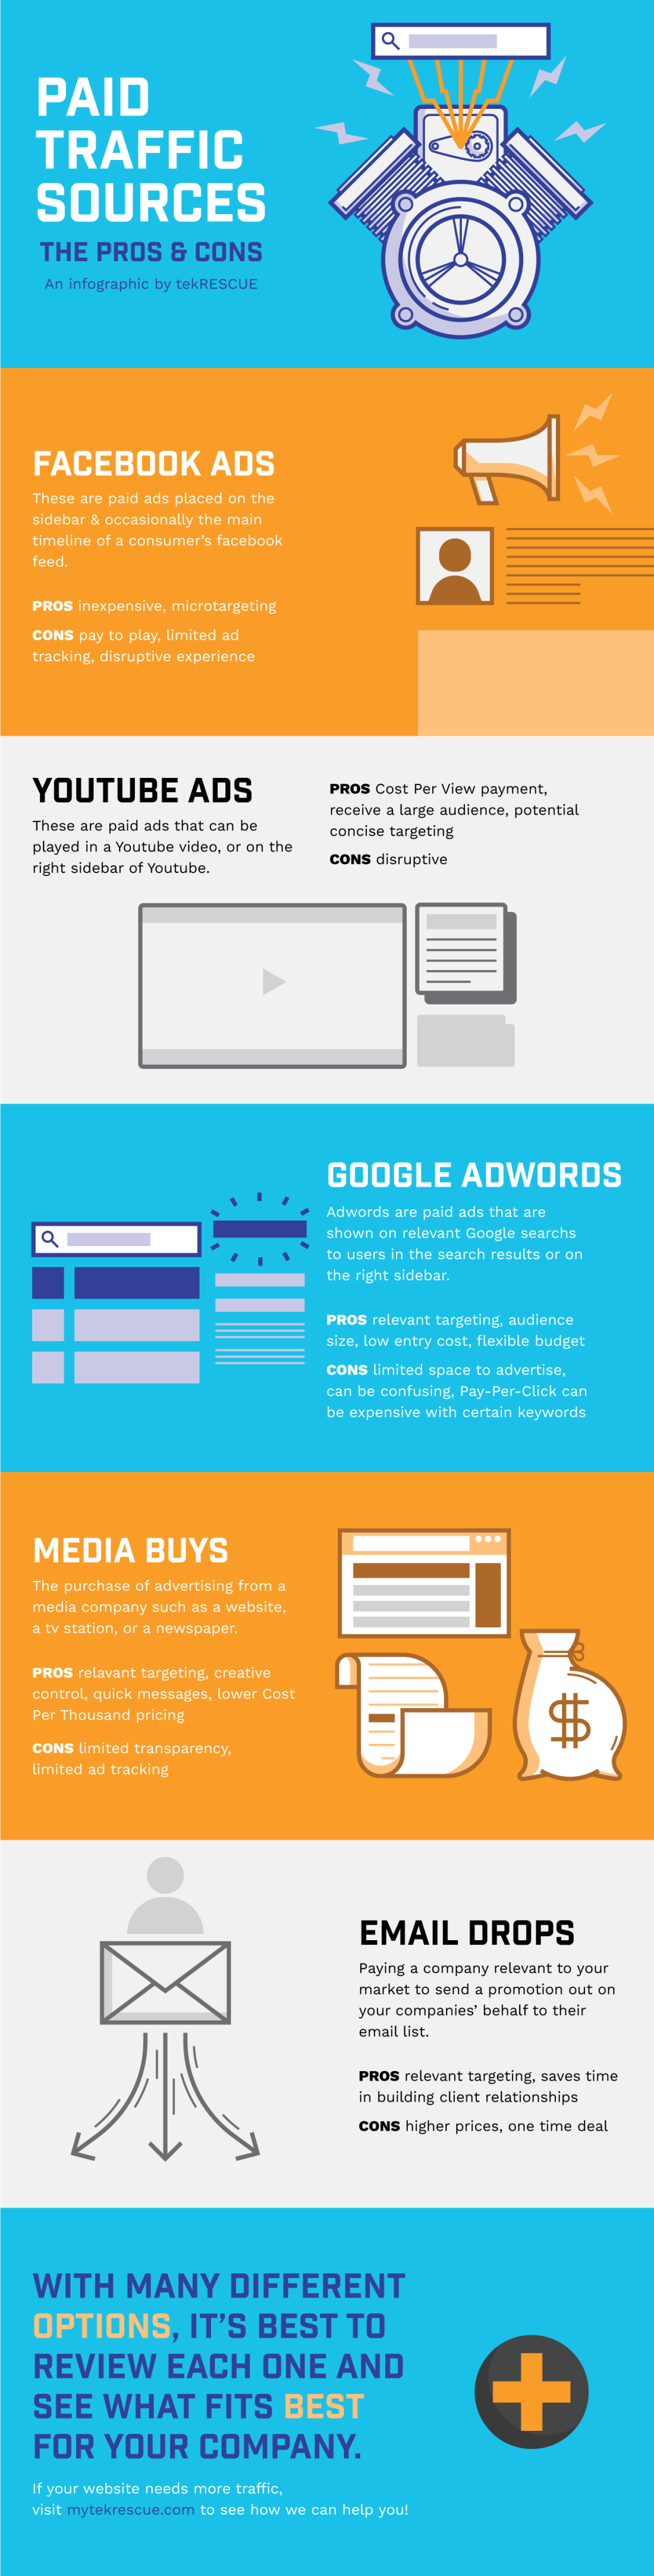 Paid Traffic Sources - #infographic